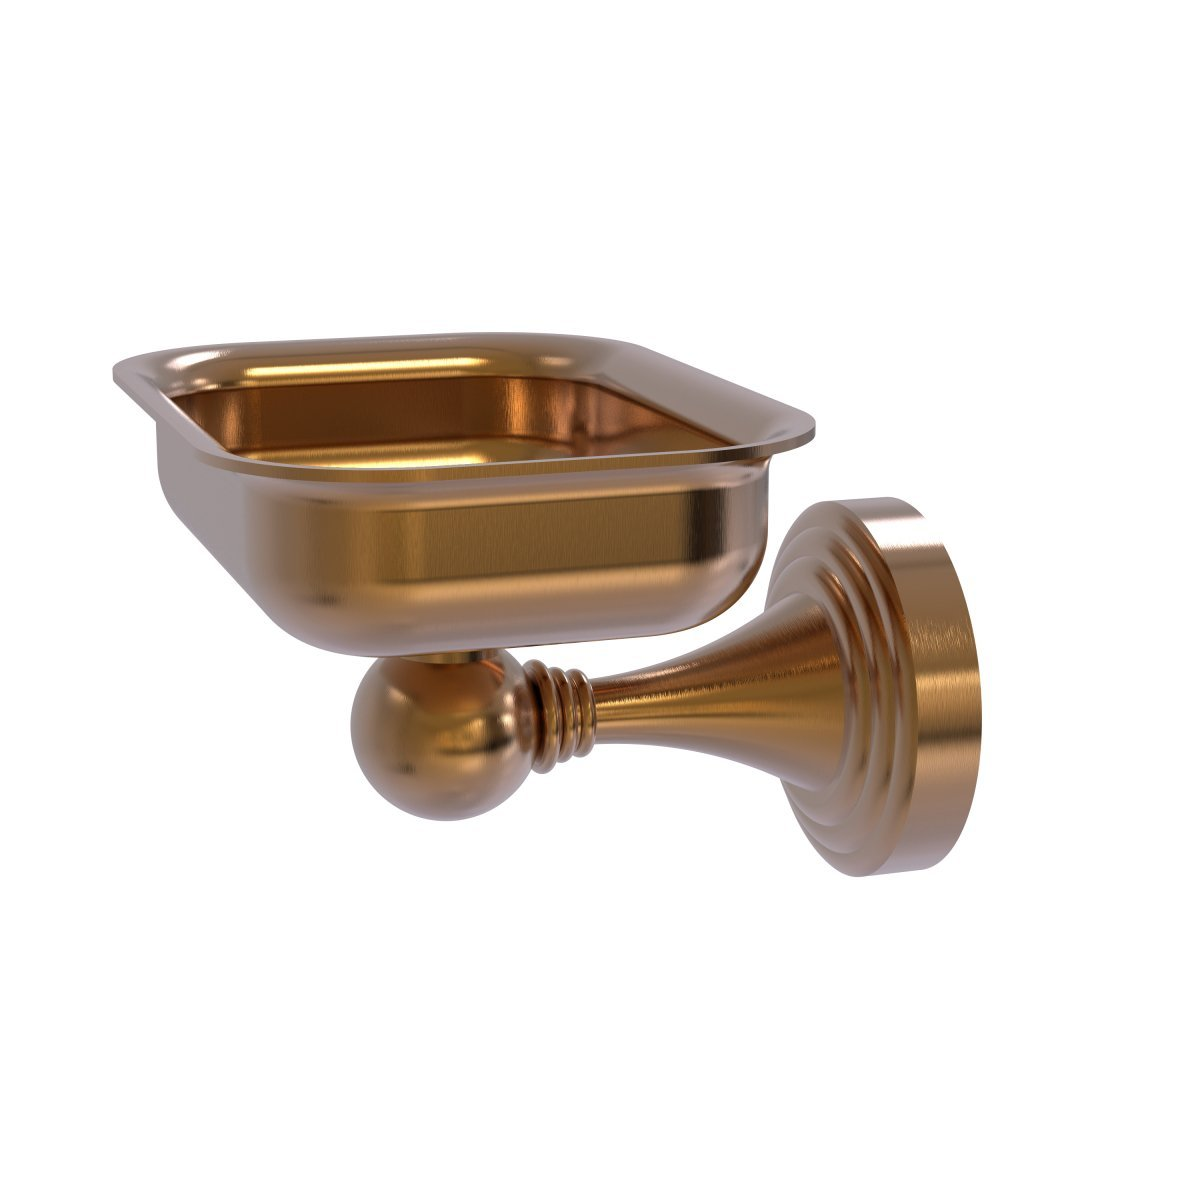 Allied Brass SG-32-Bbr Sag Harbor Collection Wall Mounted Soap Dish